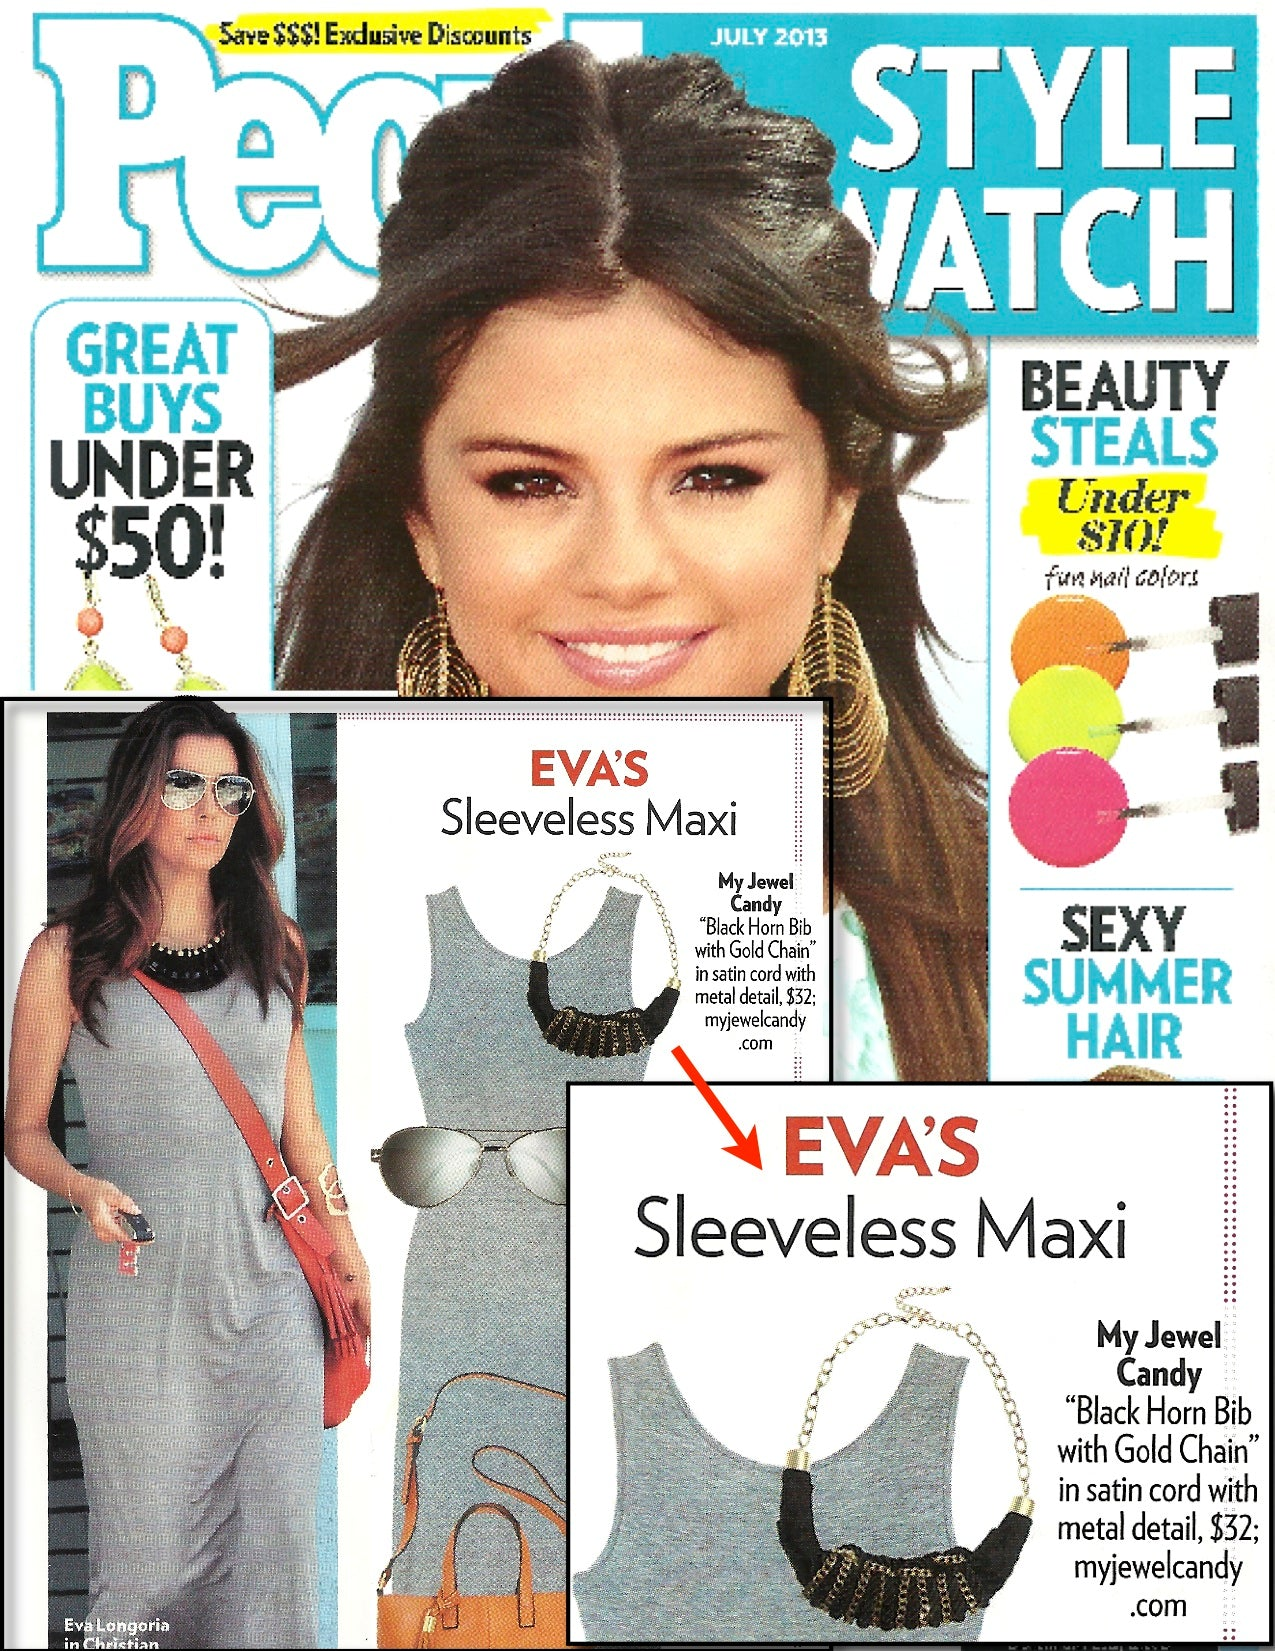 c0f00522abf Eva Longoria Necklace Black Horn Bib with Gold Chain Necklace in ...